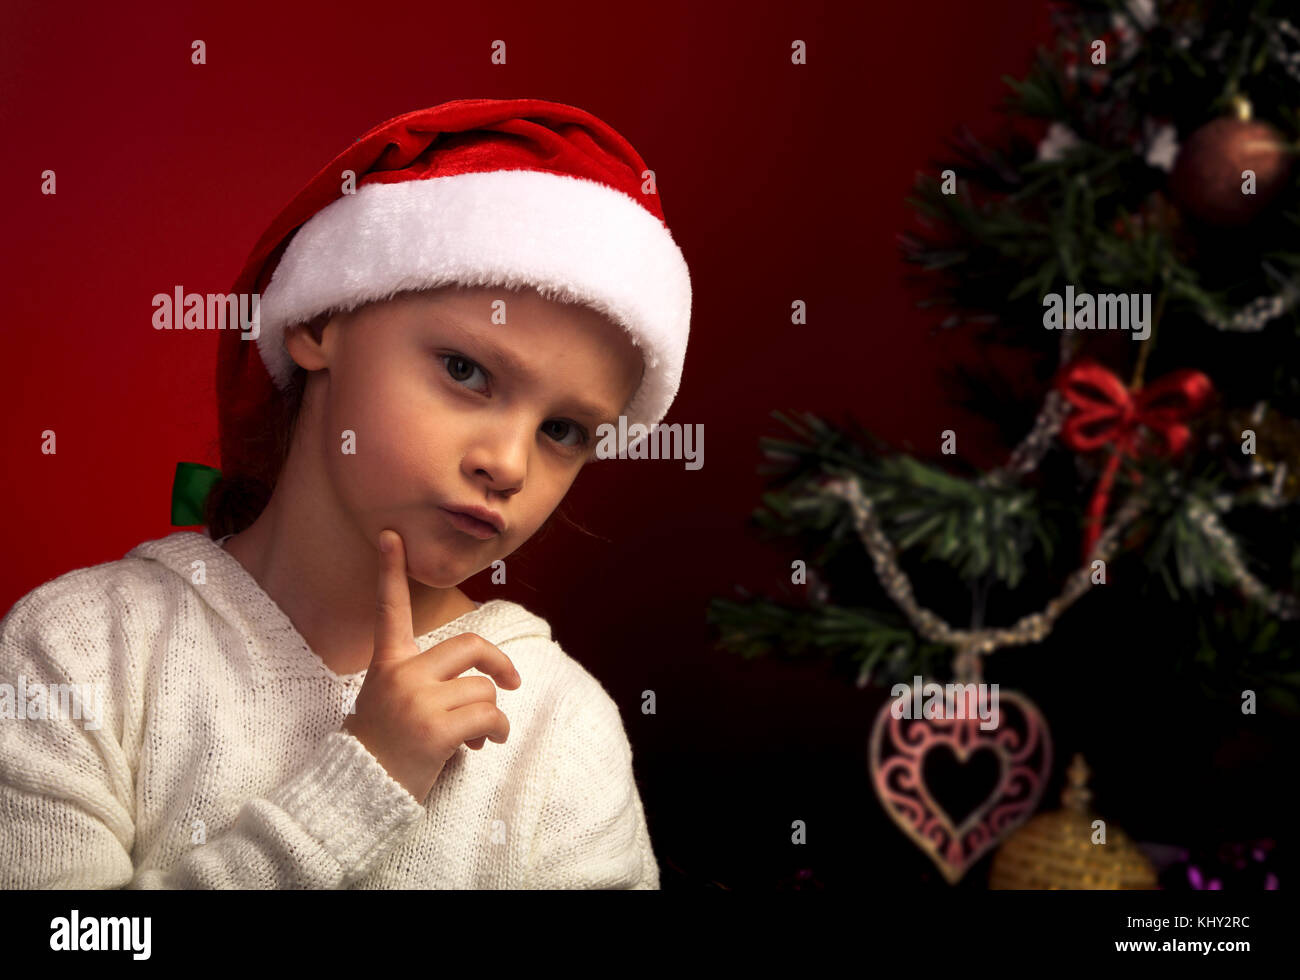 Cute angry girl in fur santa claus hat near the Christmas holiday tree thinking about the gift with grimacing face - Stock Image